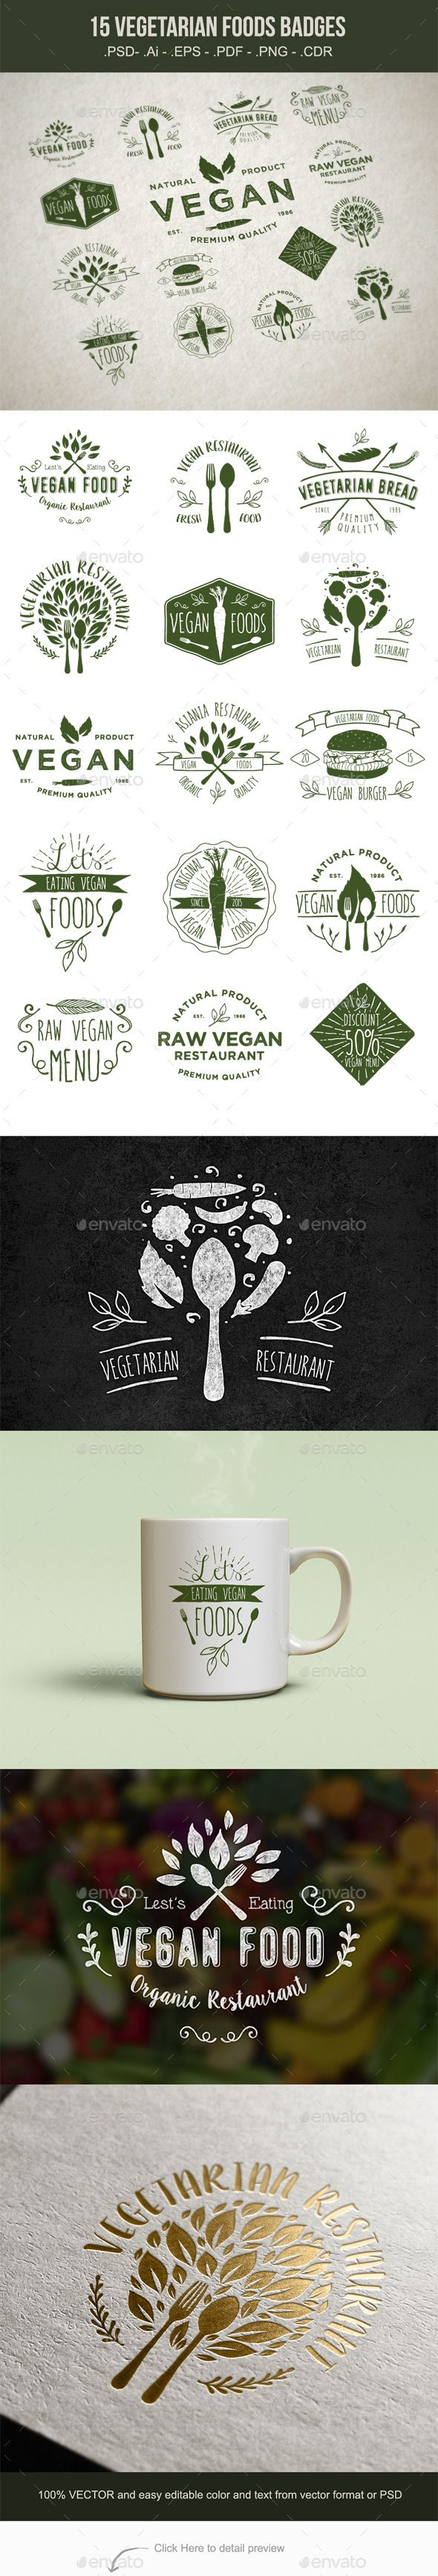 15 Vegetarian Foods Badges Vector Template #design Download: http://graphicriver.net/item/15-vegetarian-foods-badges/11184810?ref=ksioks